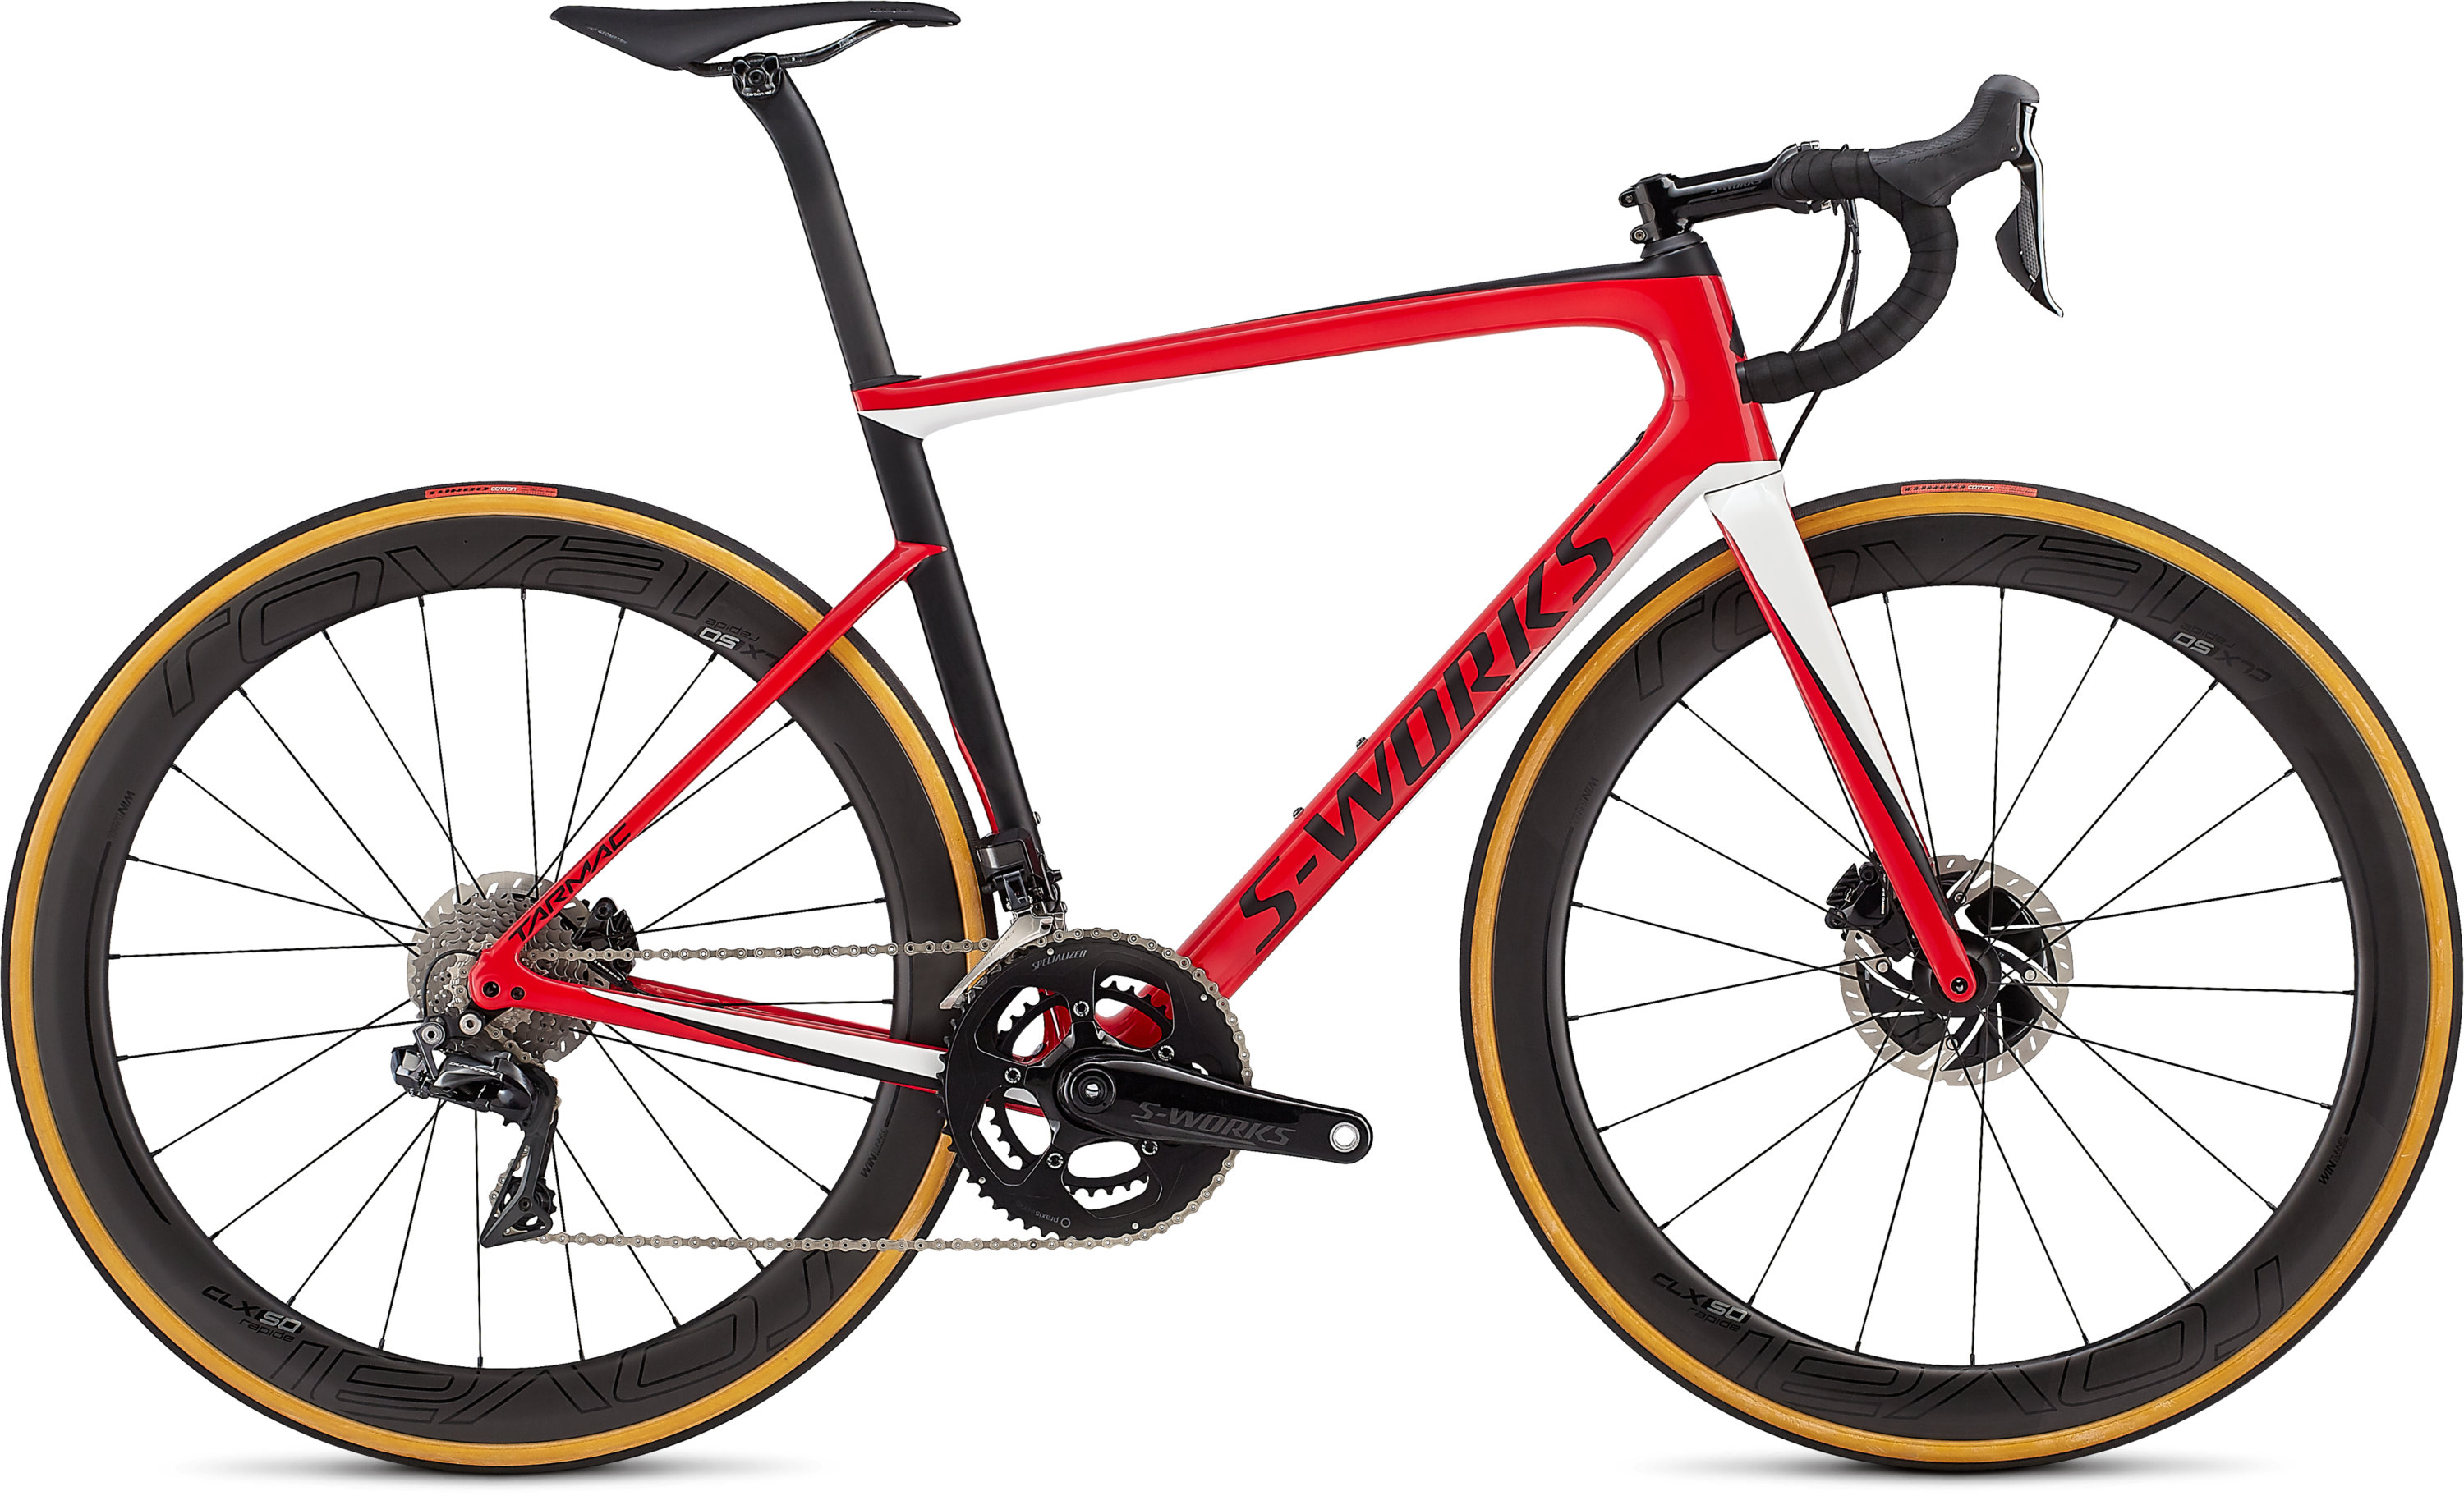 786afeb3ffc 2019 Specialized Men's S-Works Tarmac Disc - Specialized Concept Store